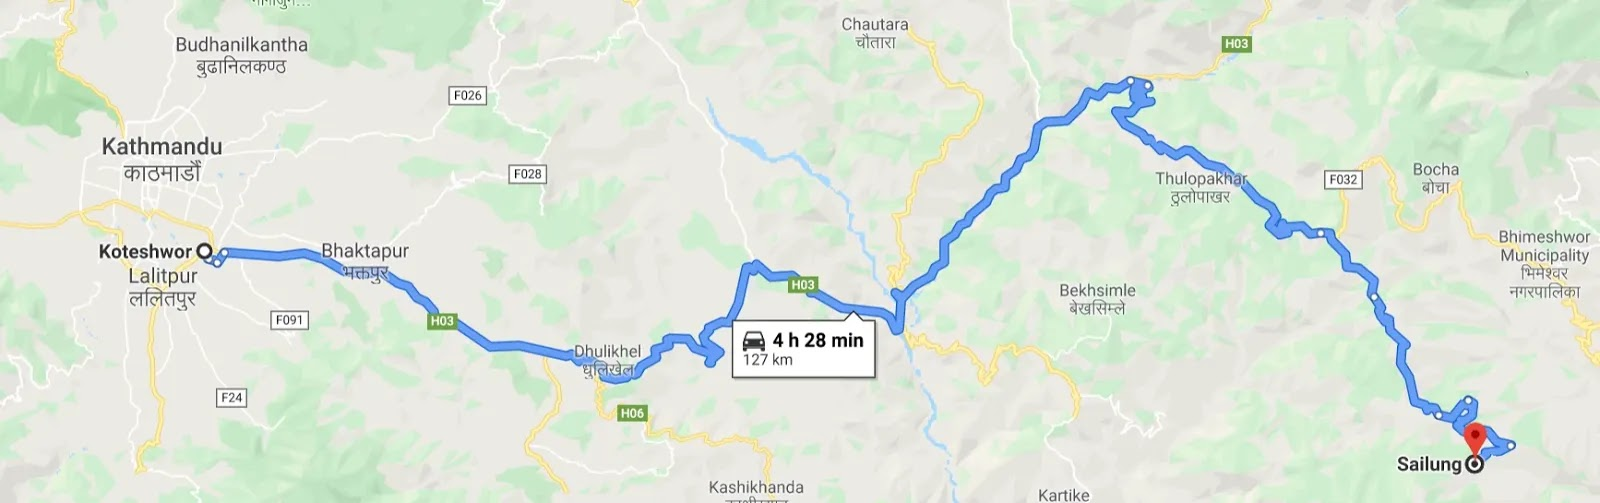 route of sailung from kathmandu